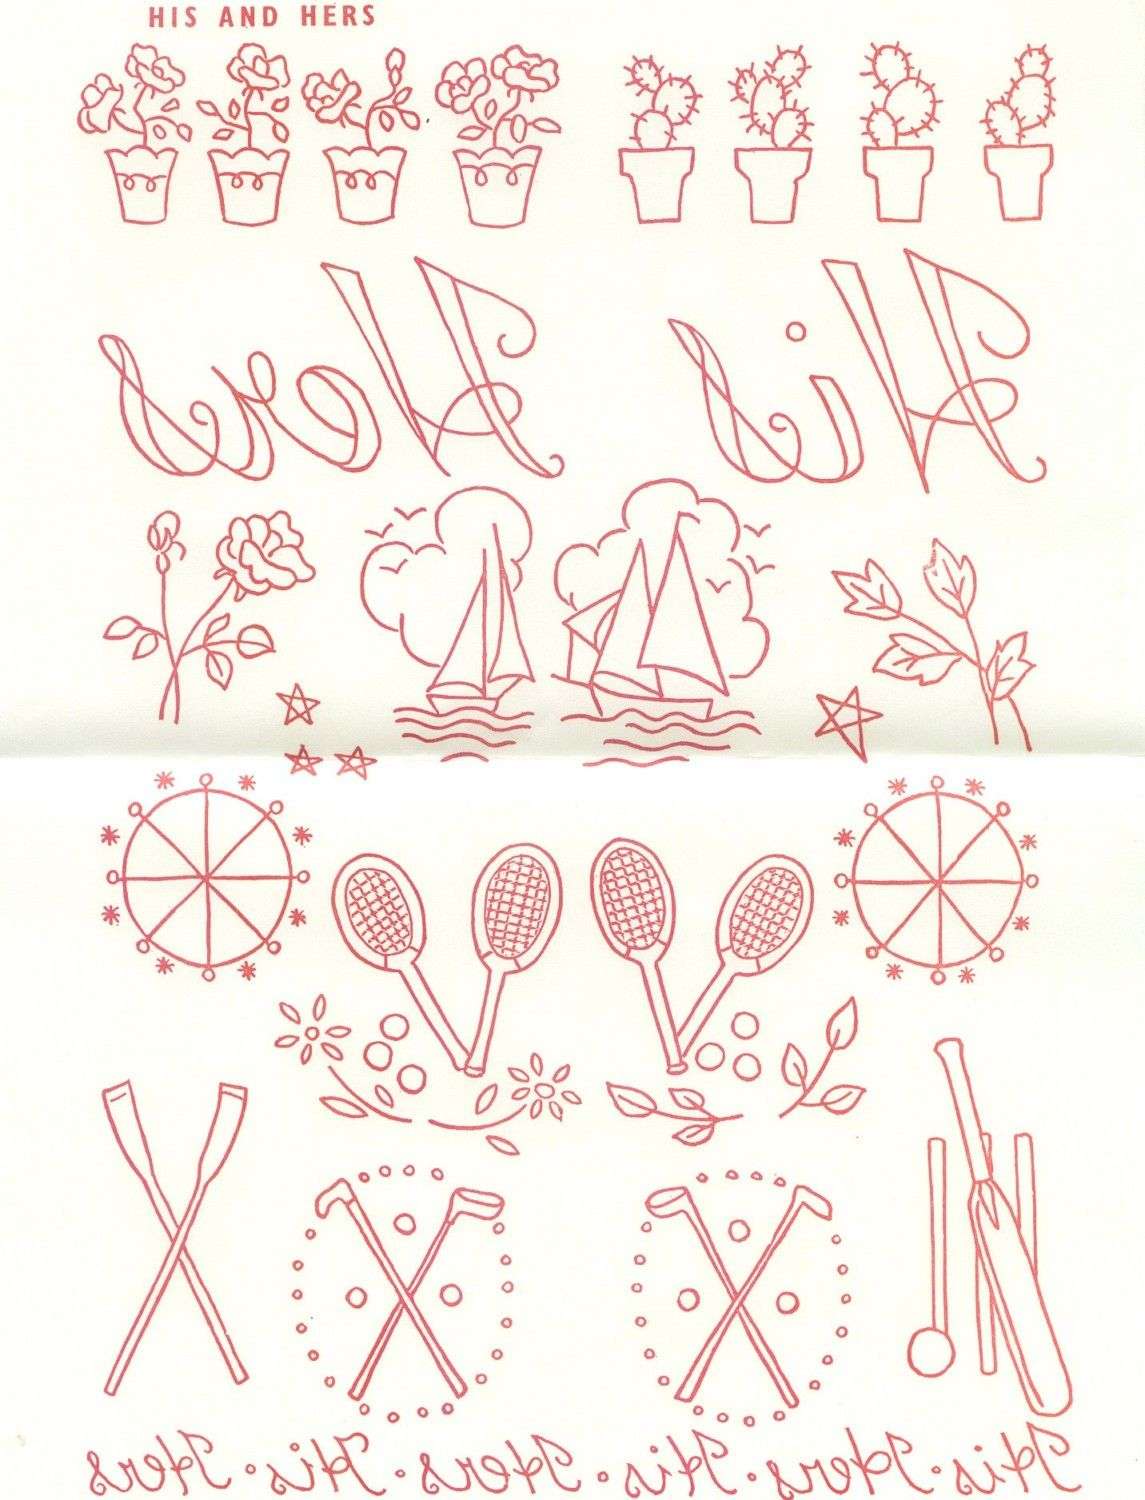 Vintage 1950s transfer his and hers embroidery pattern vintage 1950s transfer his and hers embroidery pattern couples embroidery pattern transfer bankloansurffo Gallery